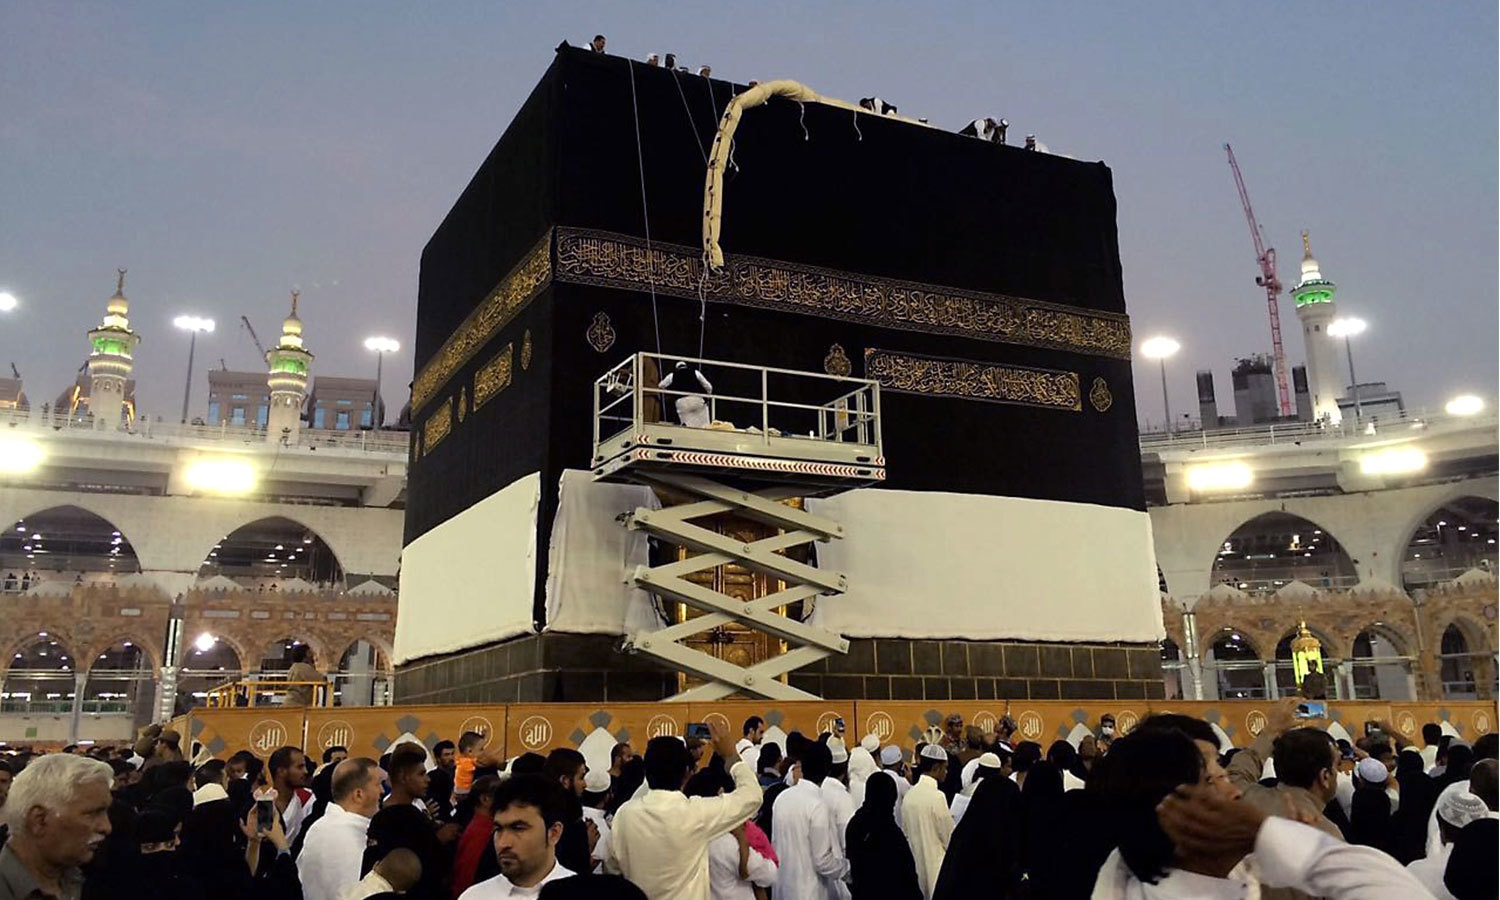 Saudi workers change the Kiswah (the cloth that covers the Kaaba) in Makkah, Saudi Arabia. — AP